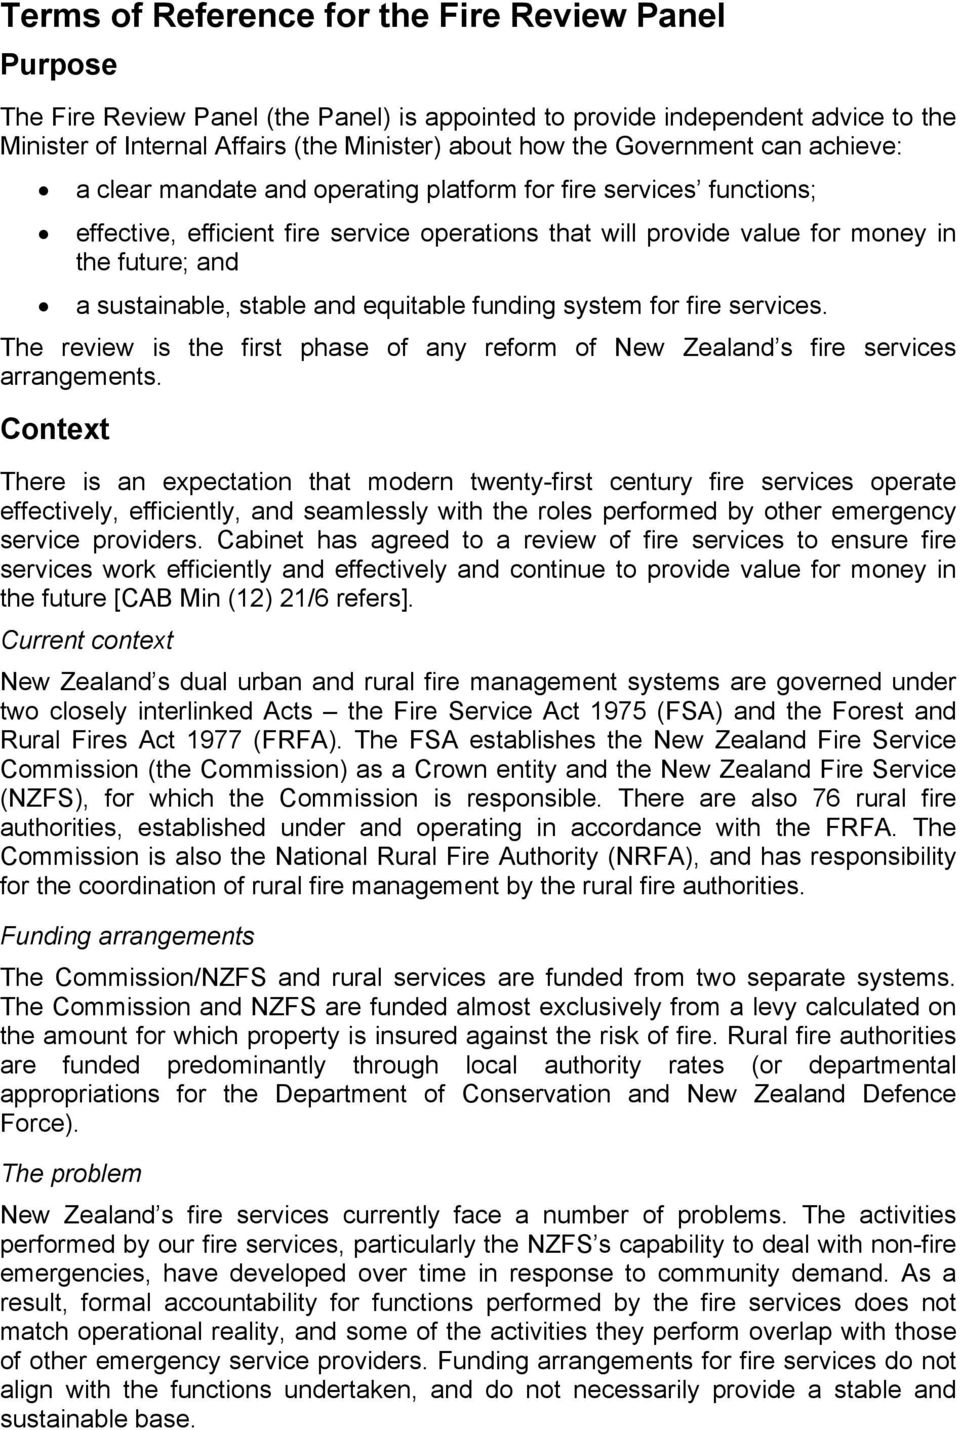 equitable funding system fr fire services. The review is the first phase f any refrm f New Zealand s fire services arrangements.